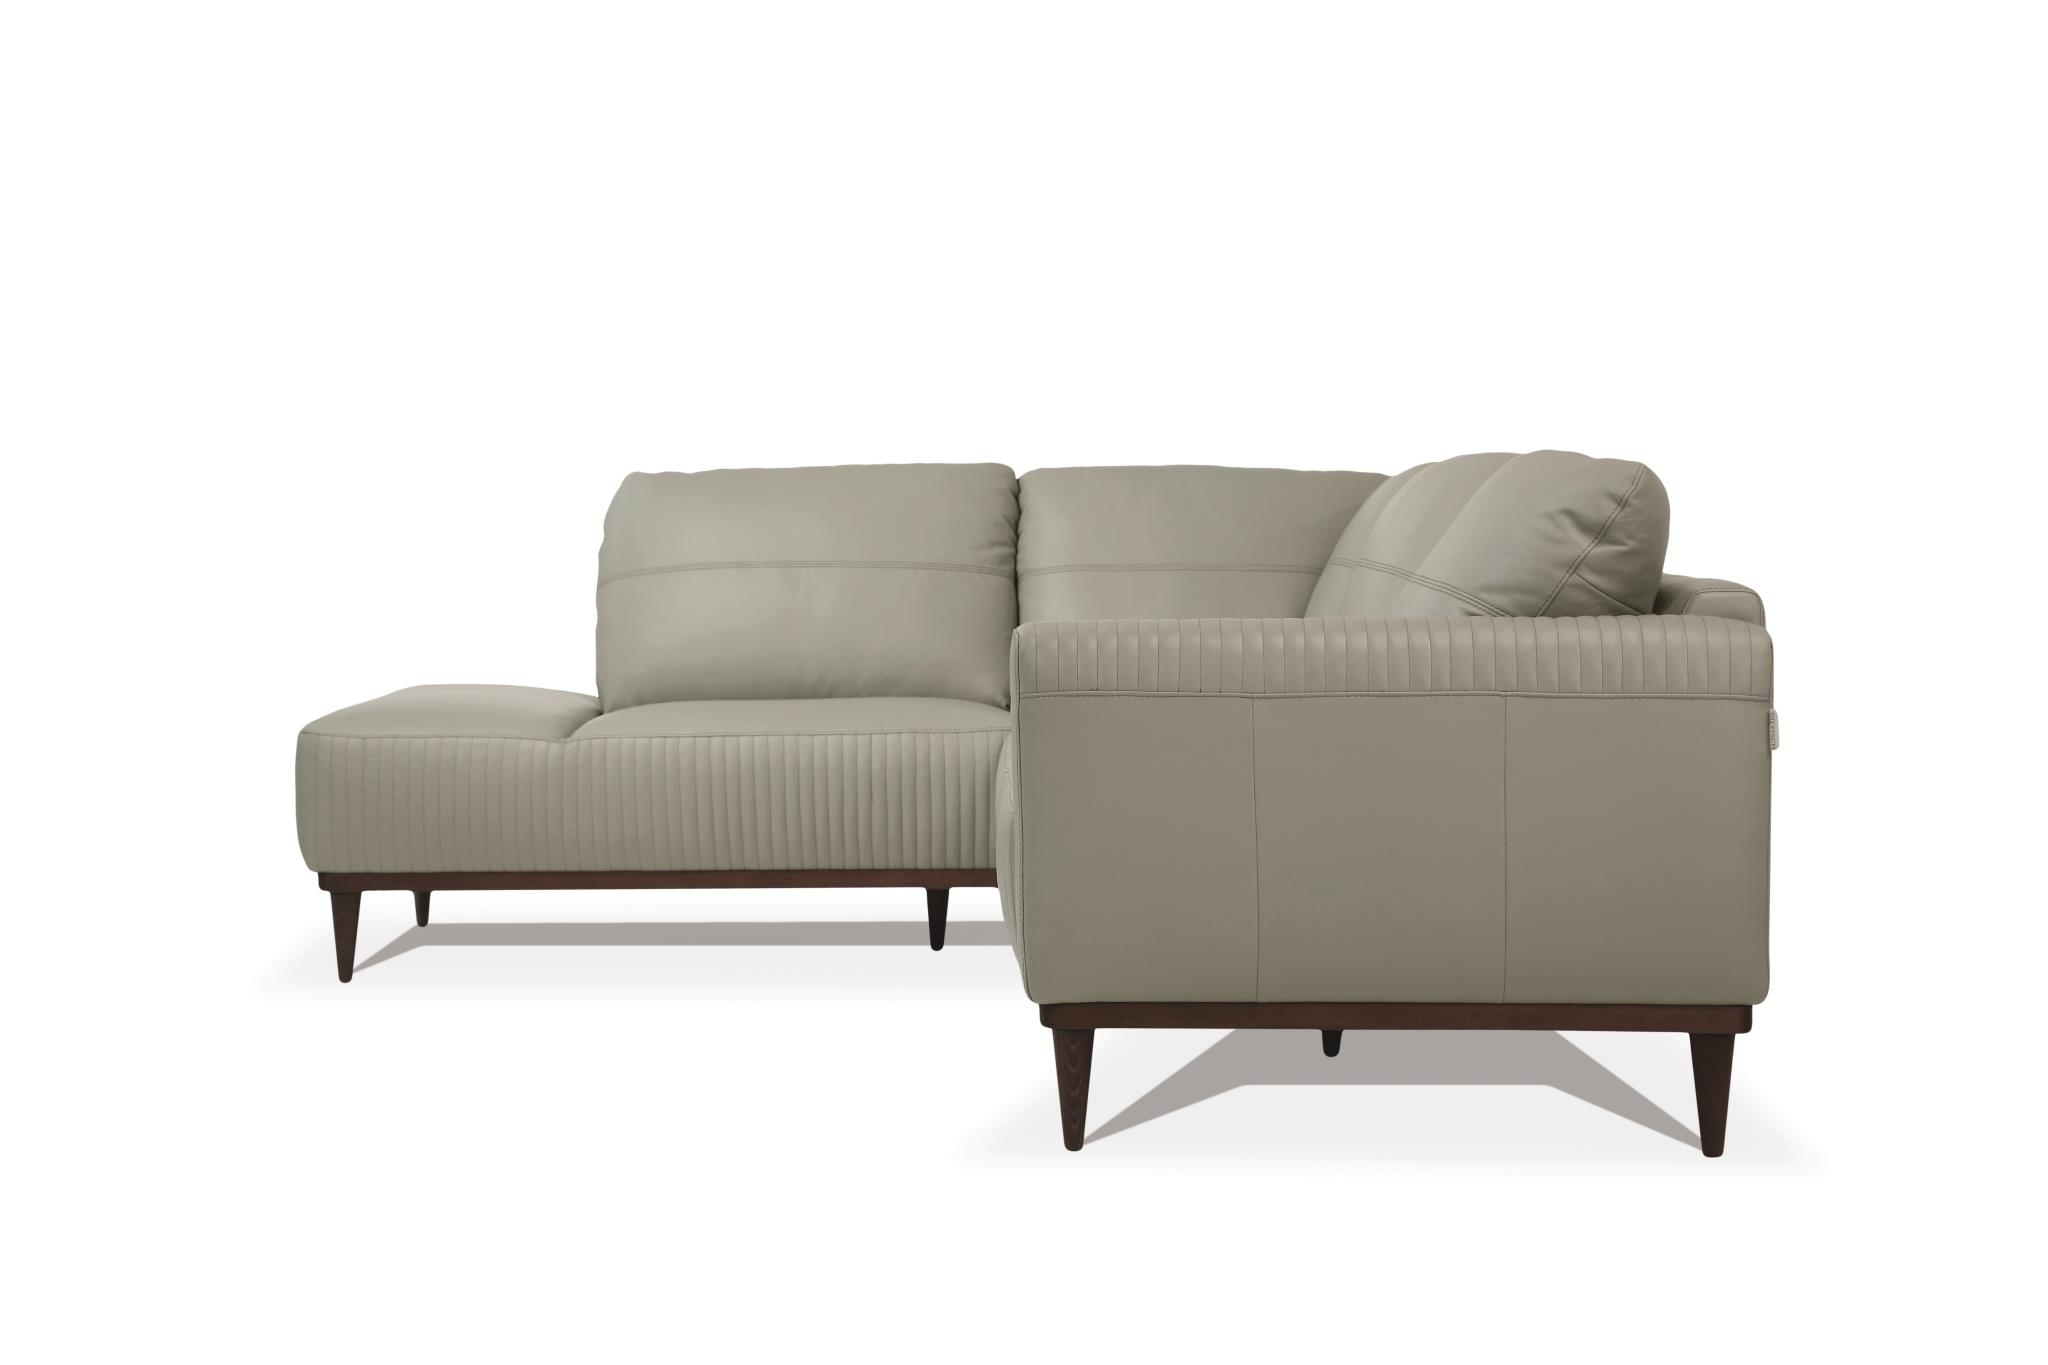 Airy Green Sectional Sofa w/ Left Facing Chaise Side